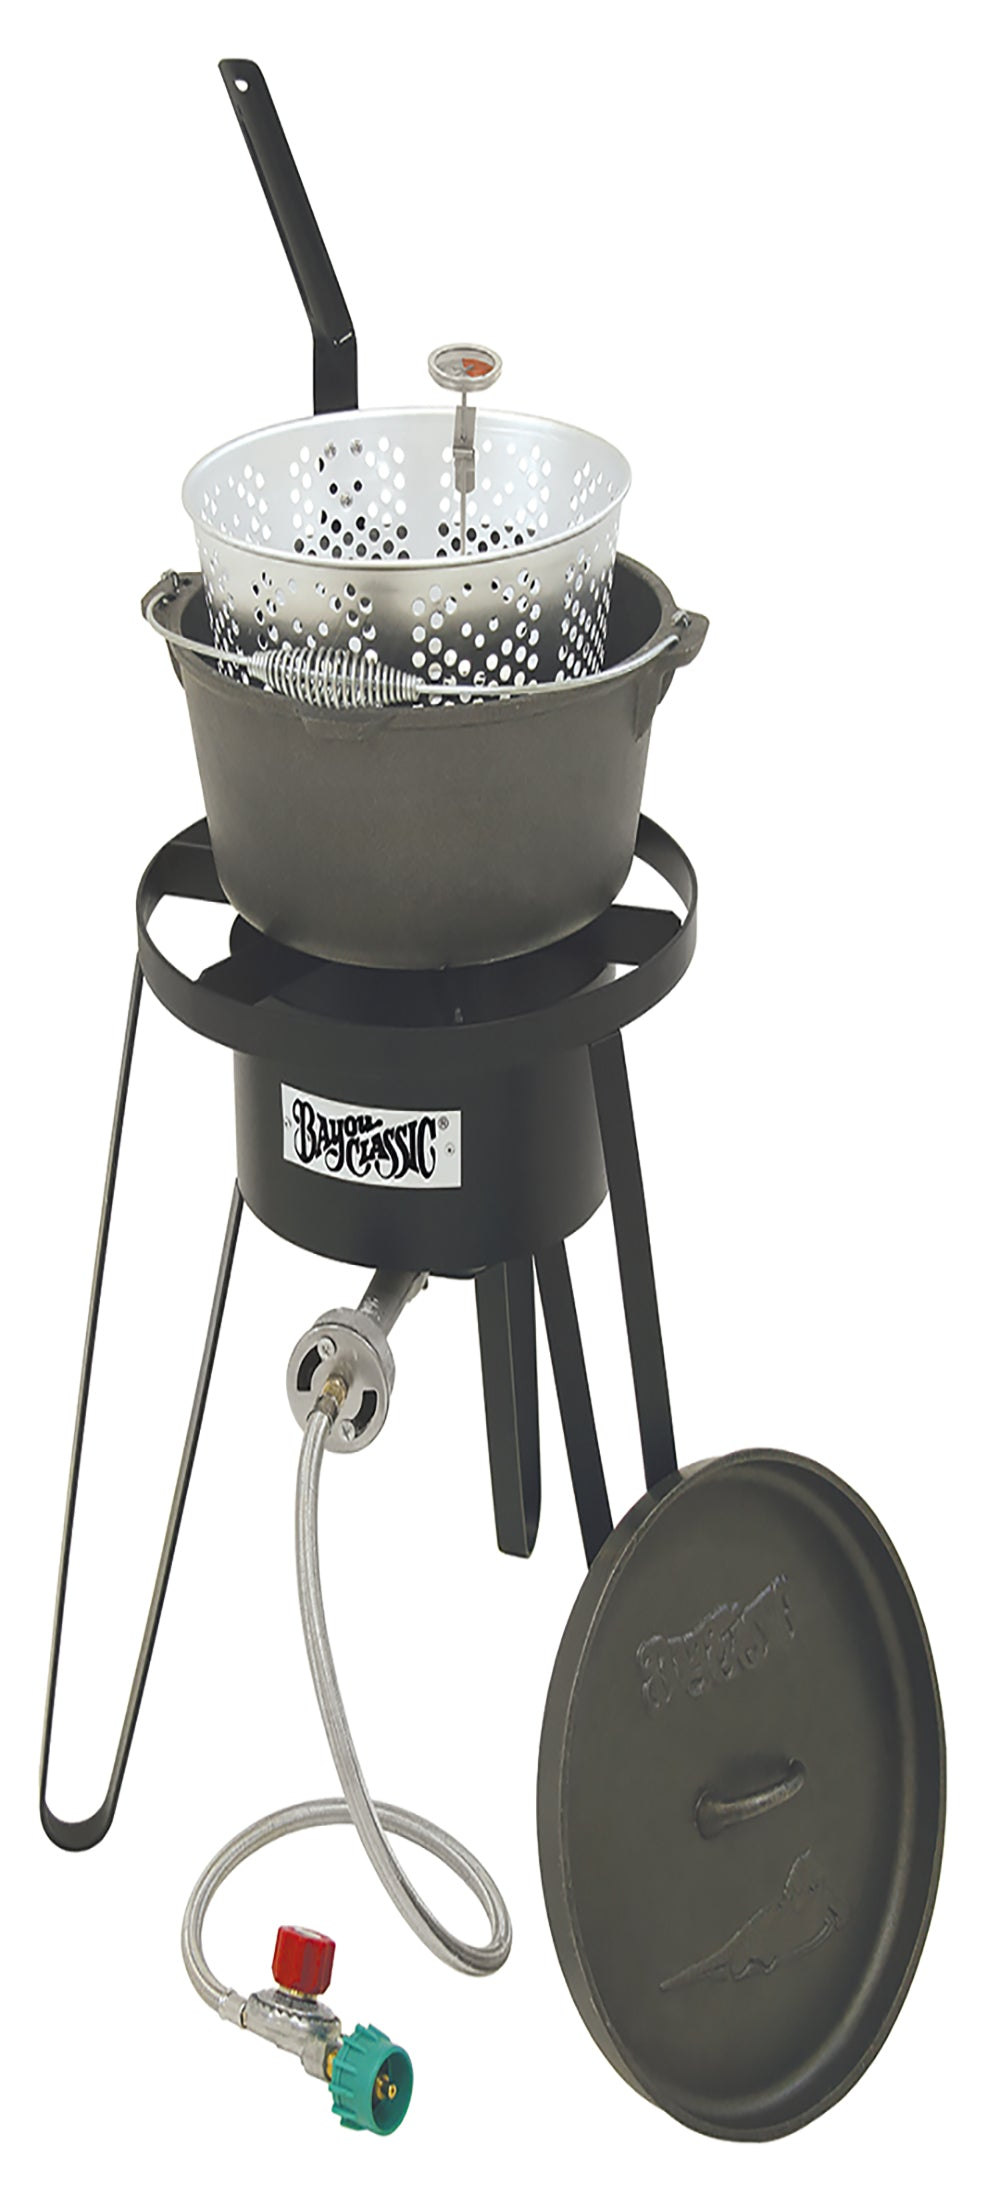 Bayou Classic Cast Iron Fry Pot, Cooker, 10 psi, Therm B159  Cooker from Bayou Classic